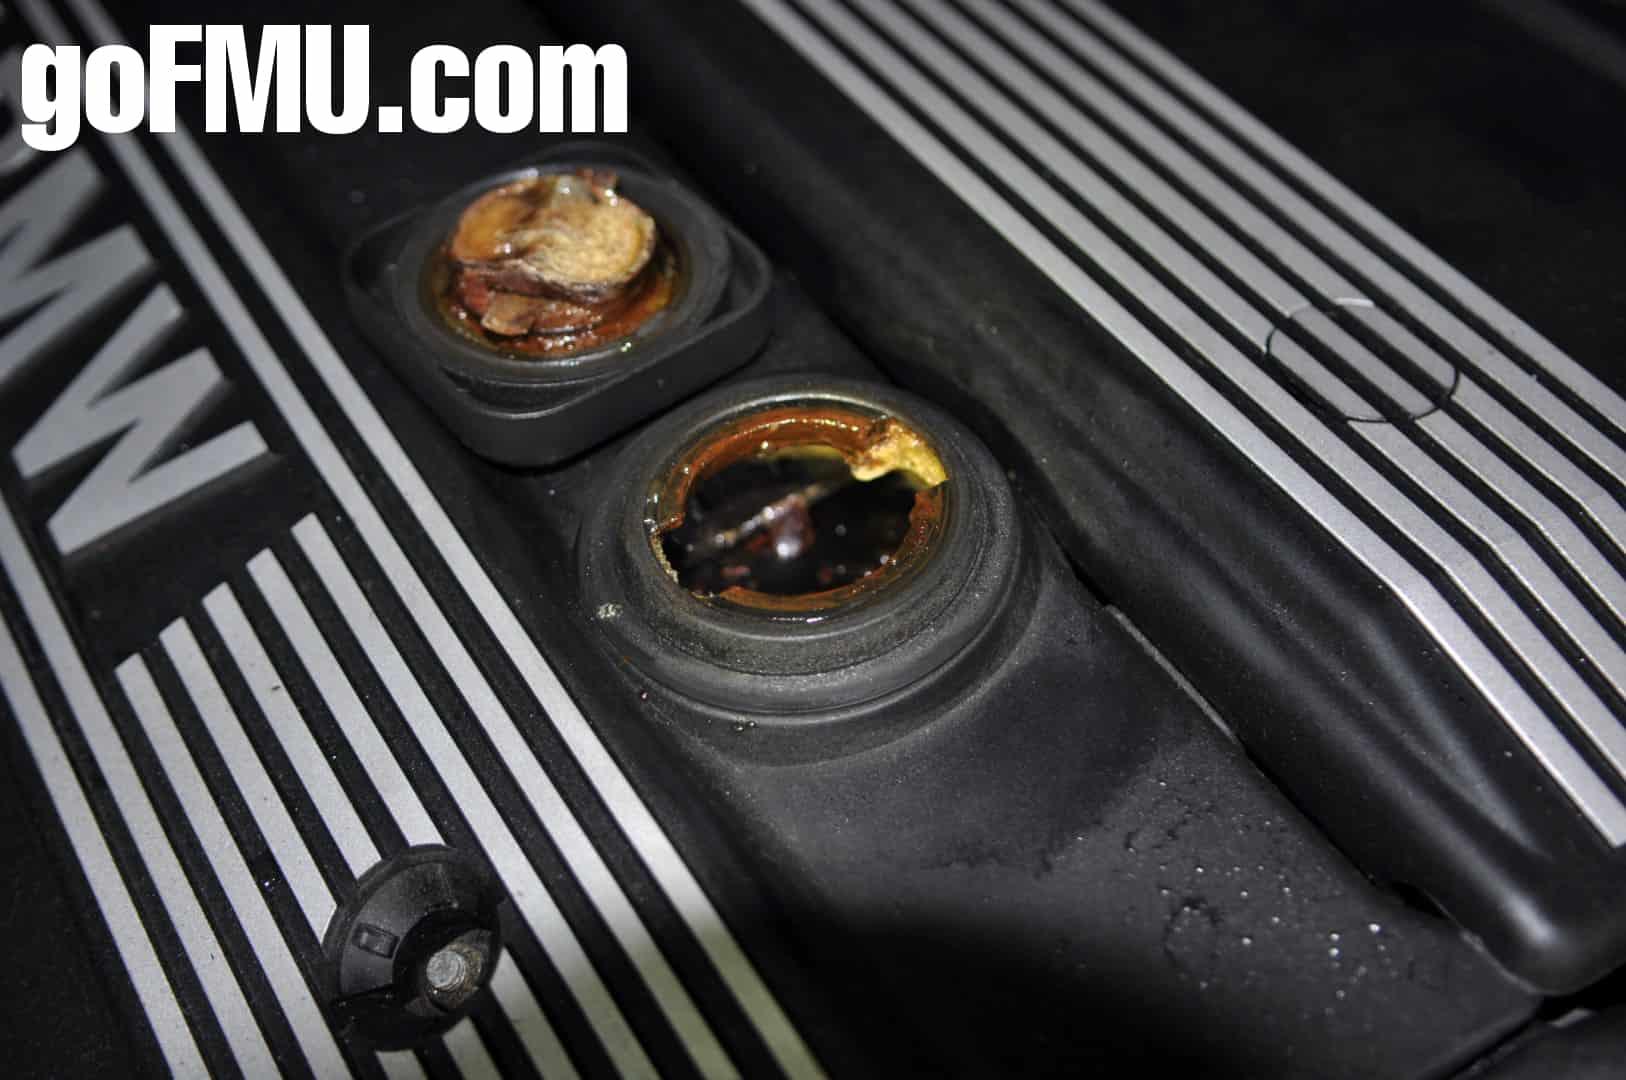 Crankcase vent valve frozen? These 5 tips will help you